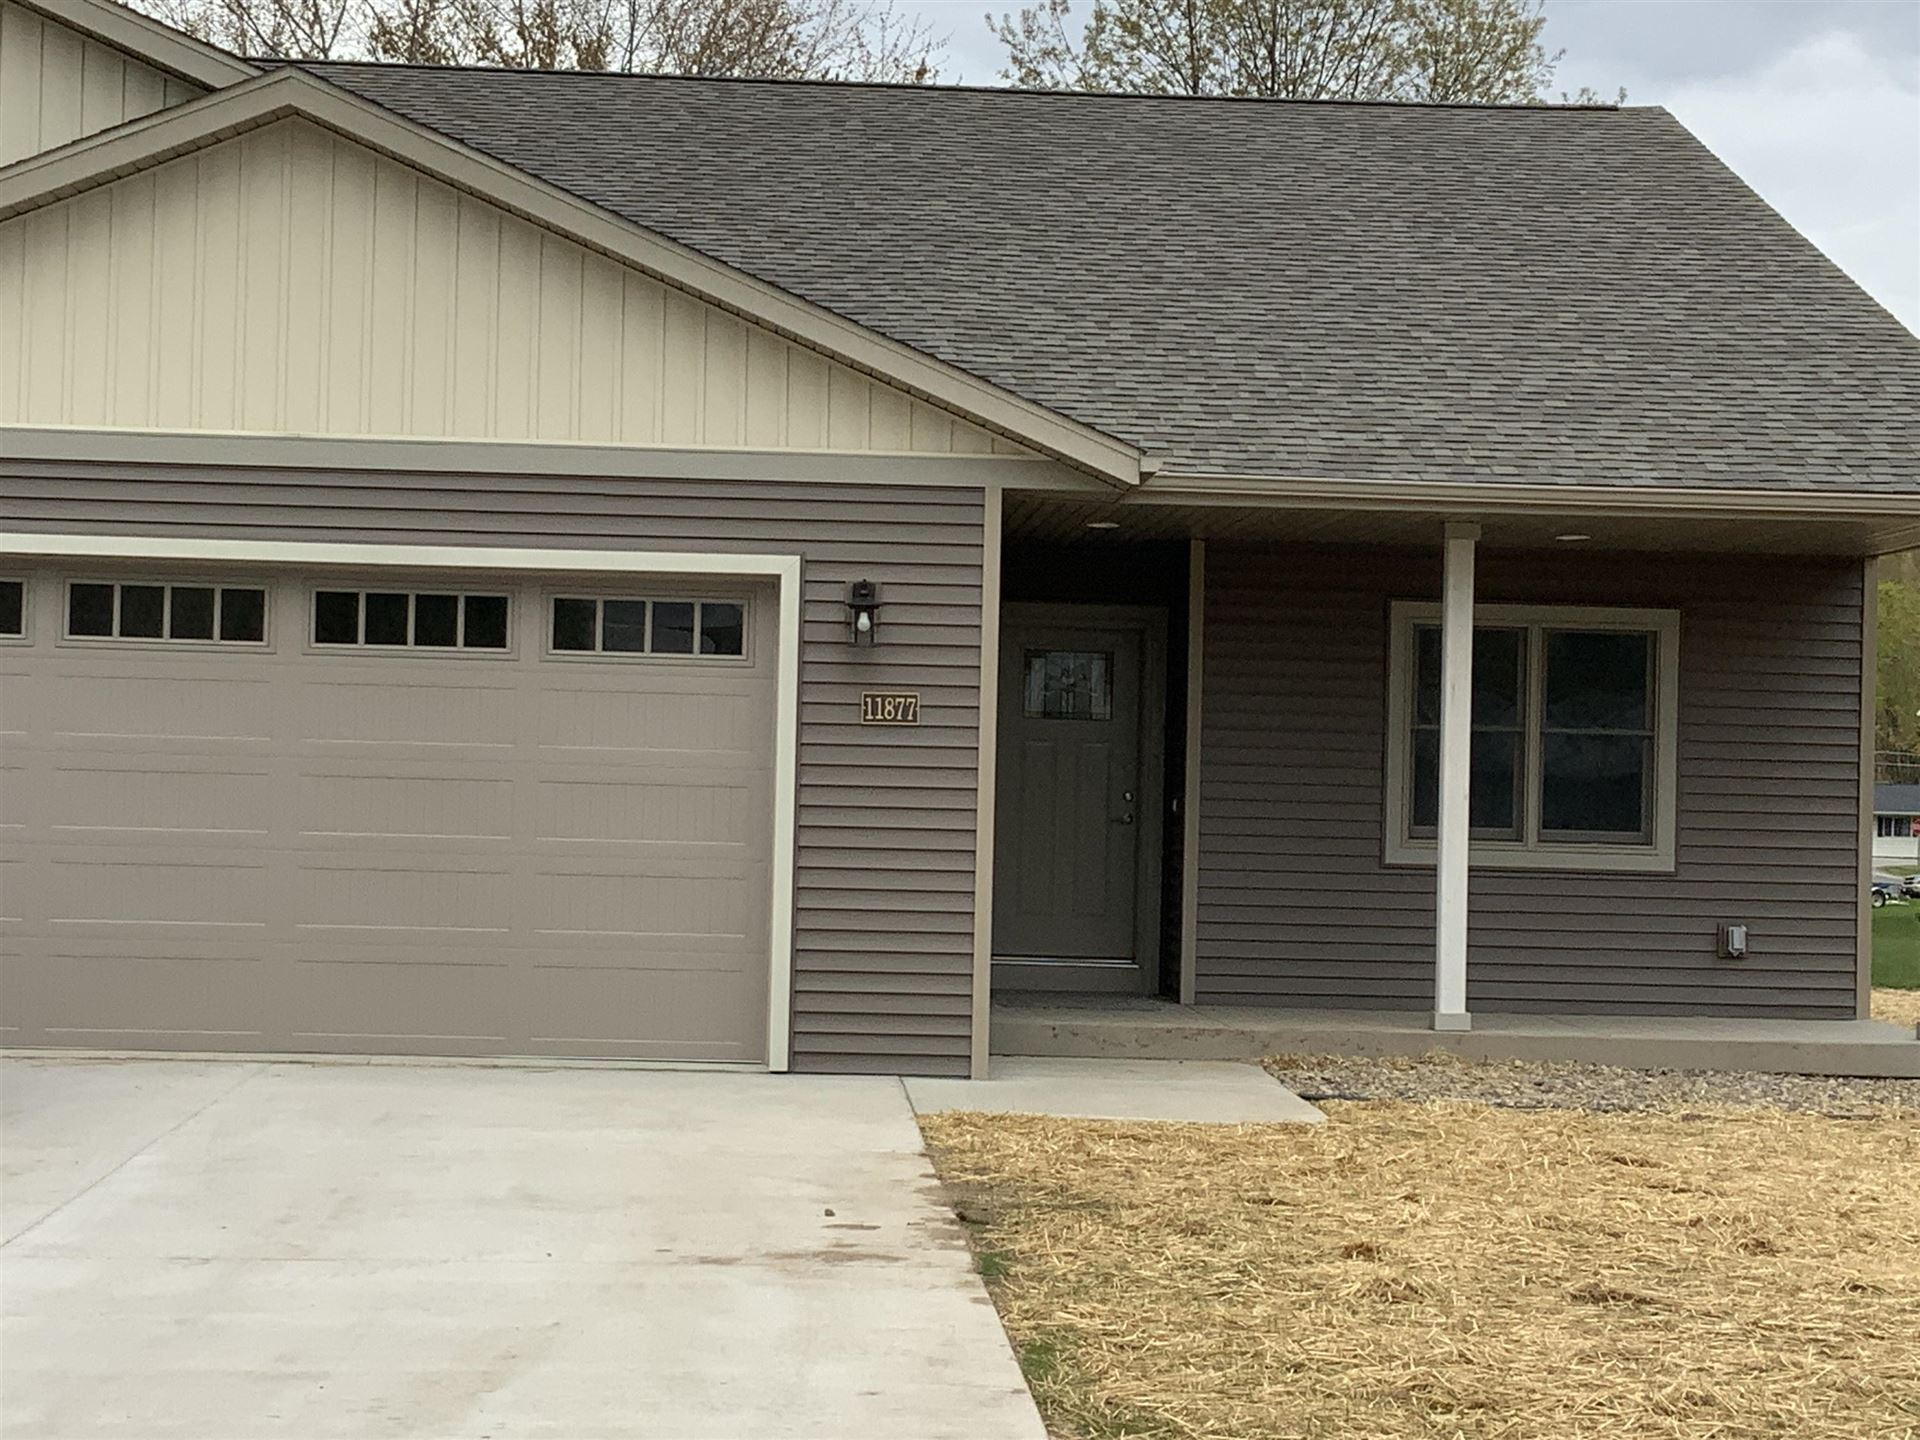 11877 Gray St, Trempealeau, WI 54661 - MLS#: 1726247